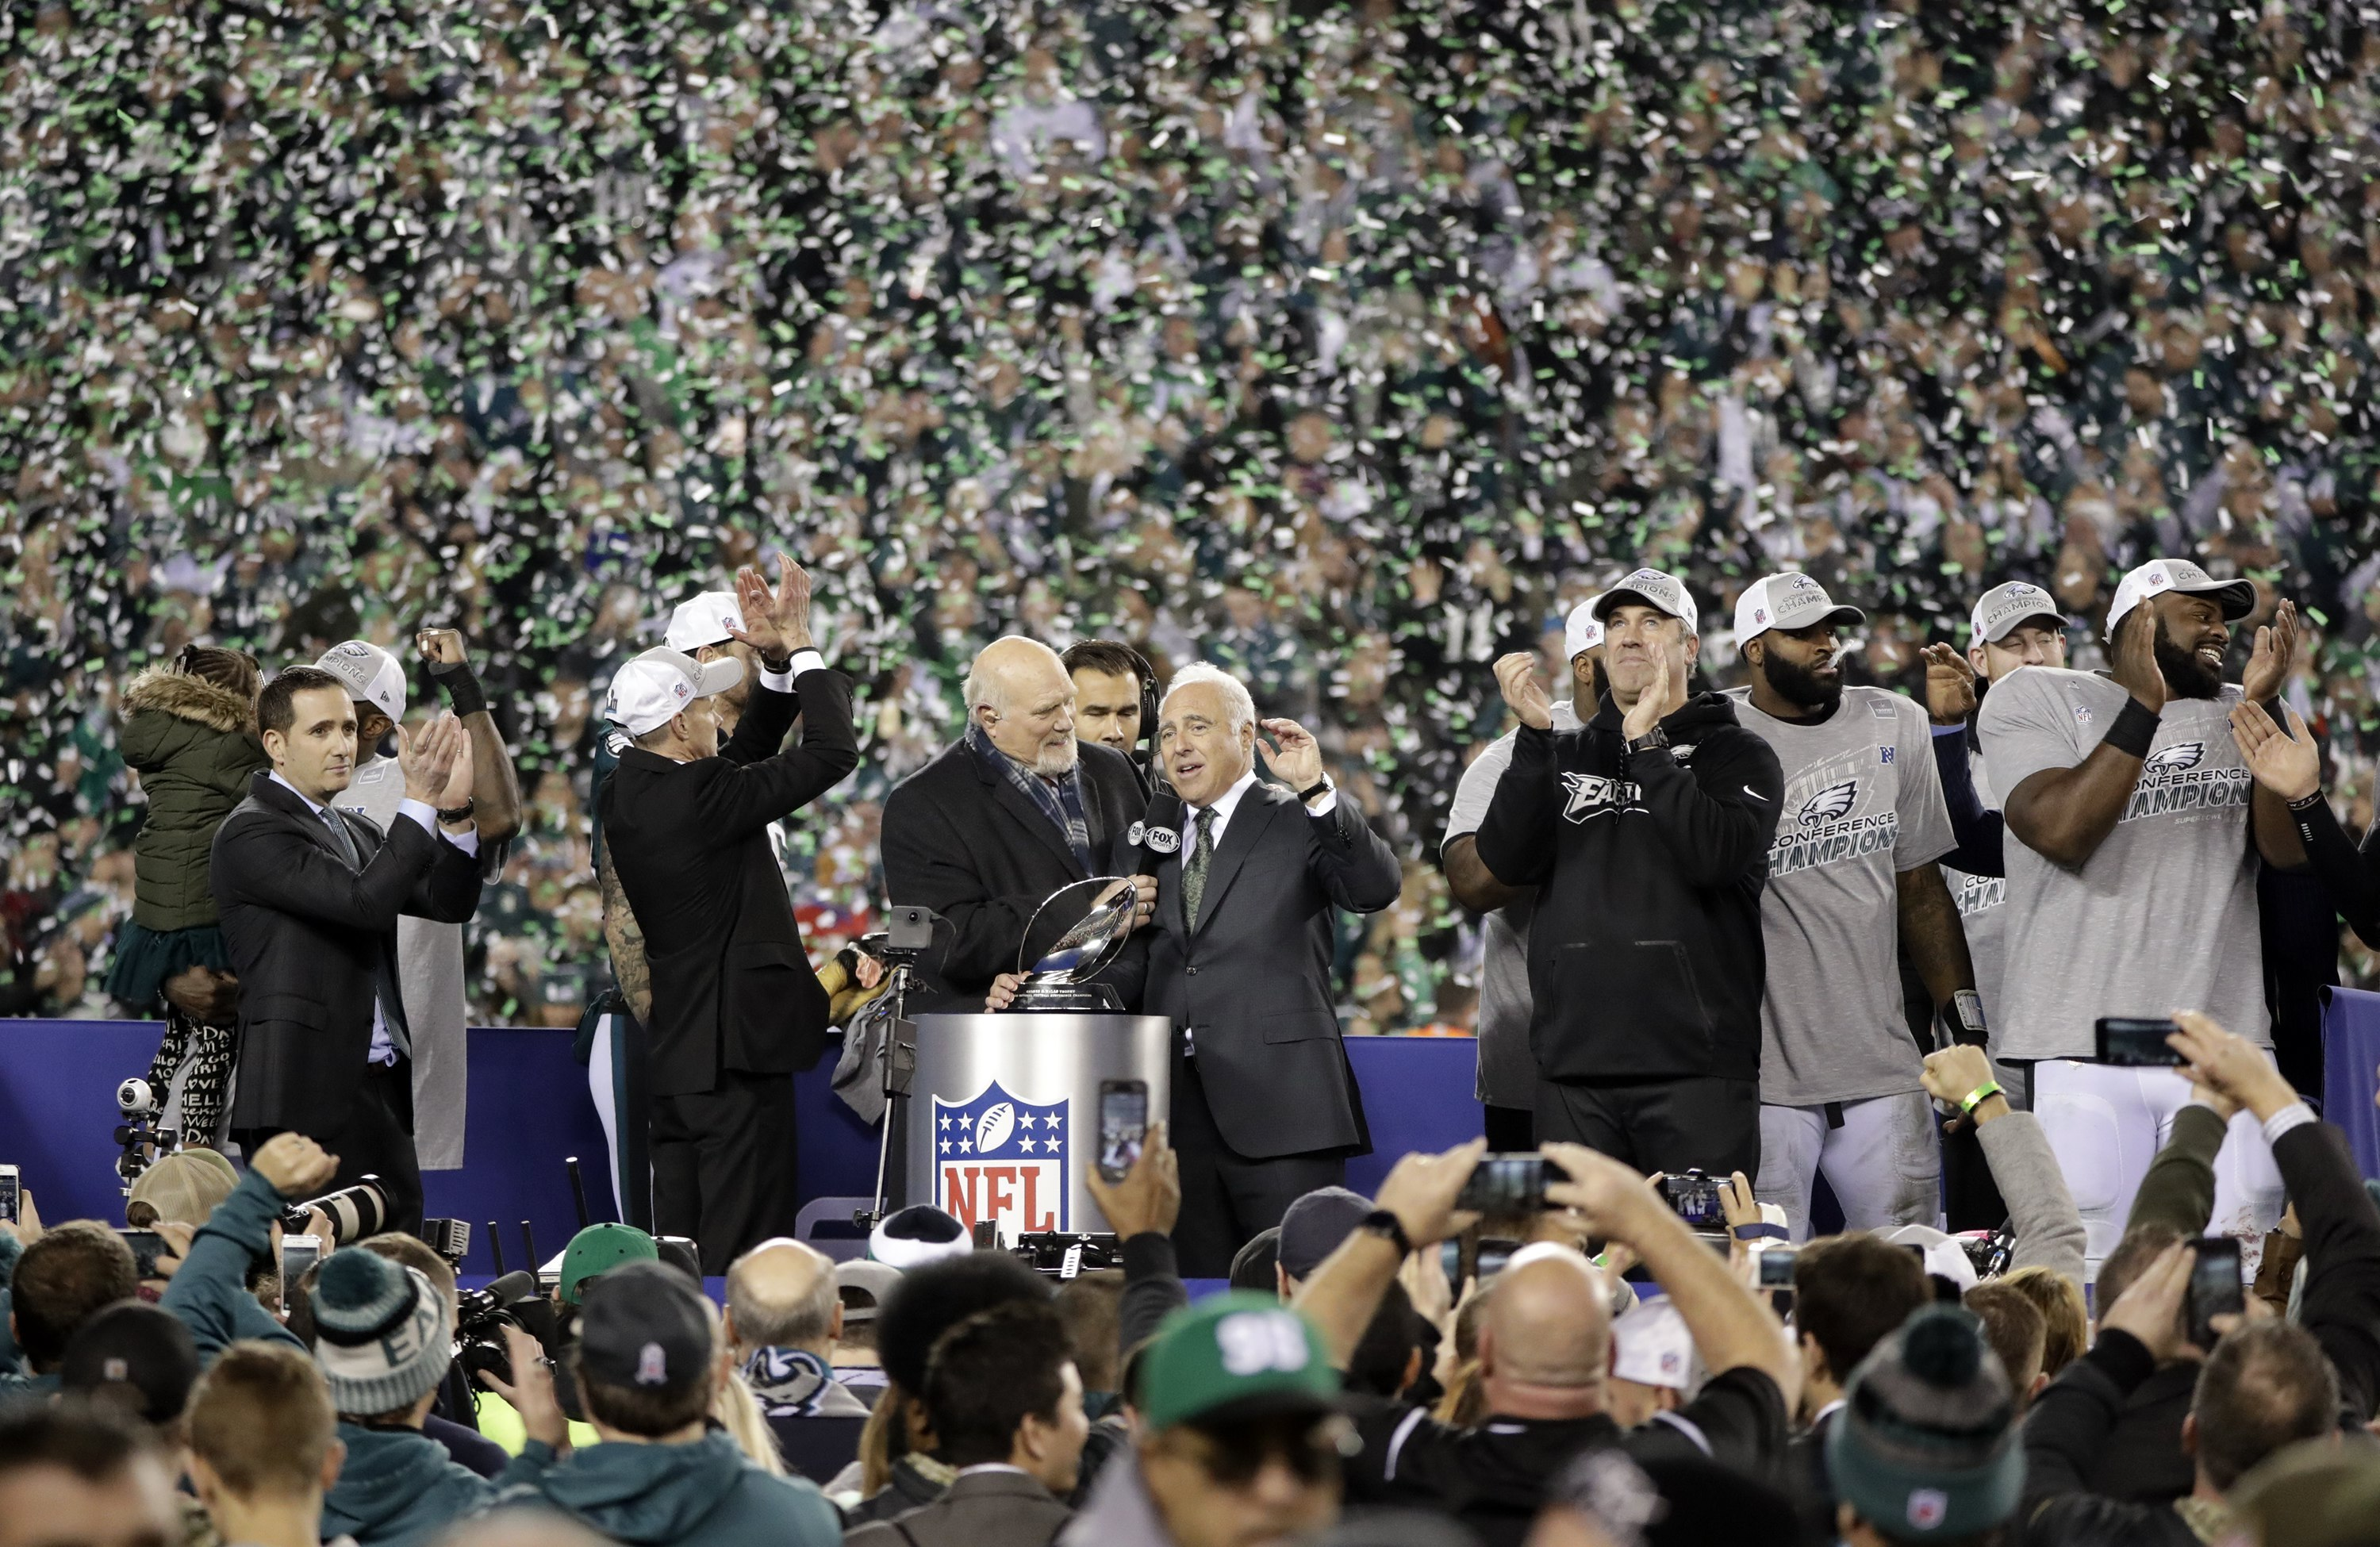 Philadelphia Eagles owner Jeffrey Lurie (C) talks to the fans in the stadium next to NFC Championship trophy at the conclusion of his team after they defeated the Minnesota Vikings at Lincoln Financial Field in Philadelphia, Pennsylvania, USA, 21 January 2018. EPA-EFE